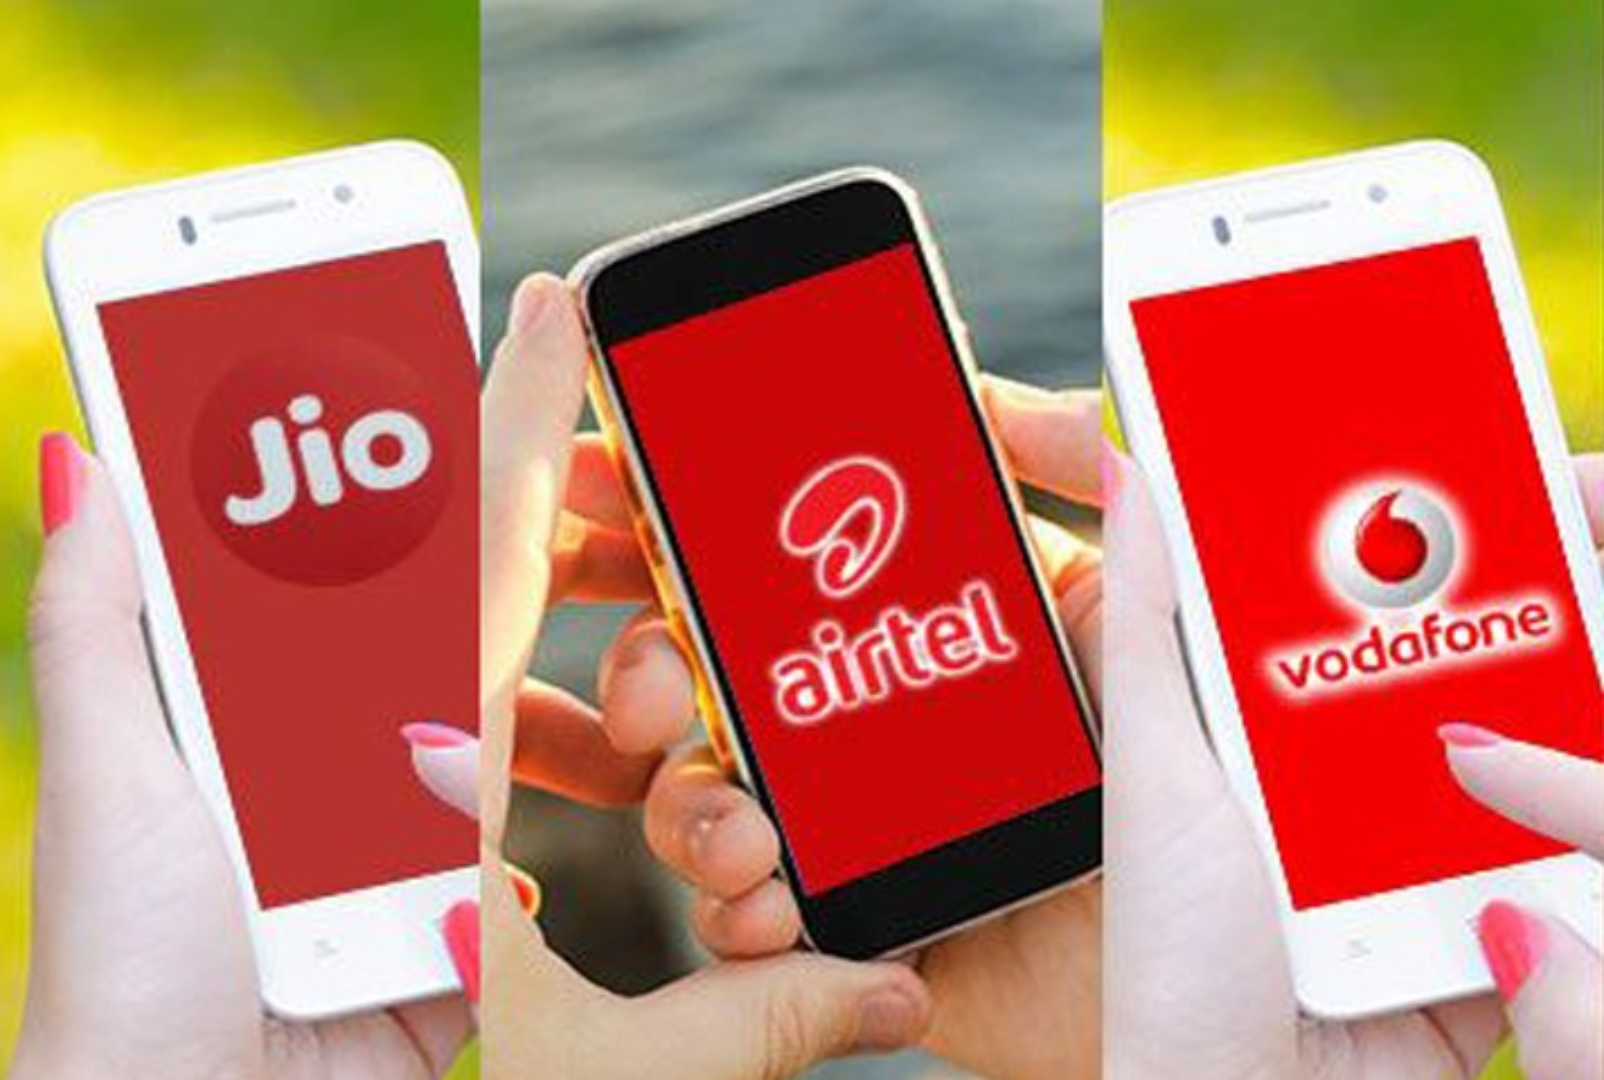 This New Year Airtel Vodafone Idea Tariffs May Go Up By 20%